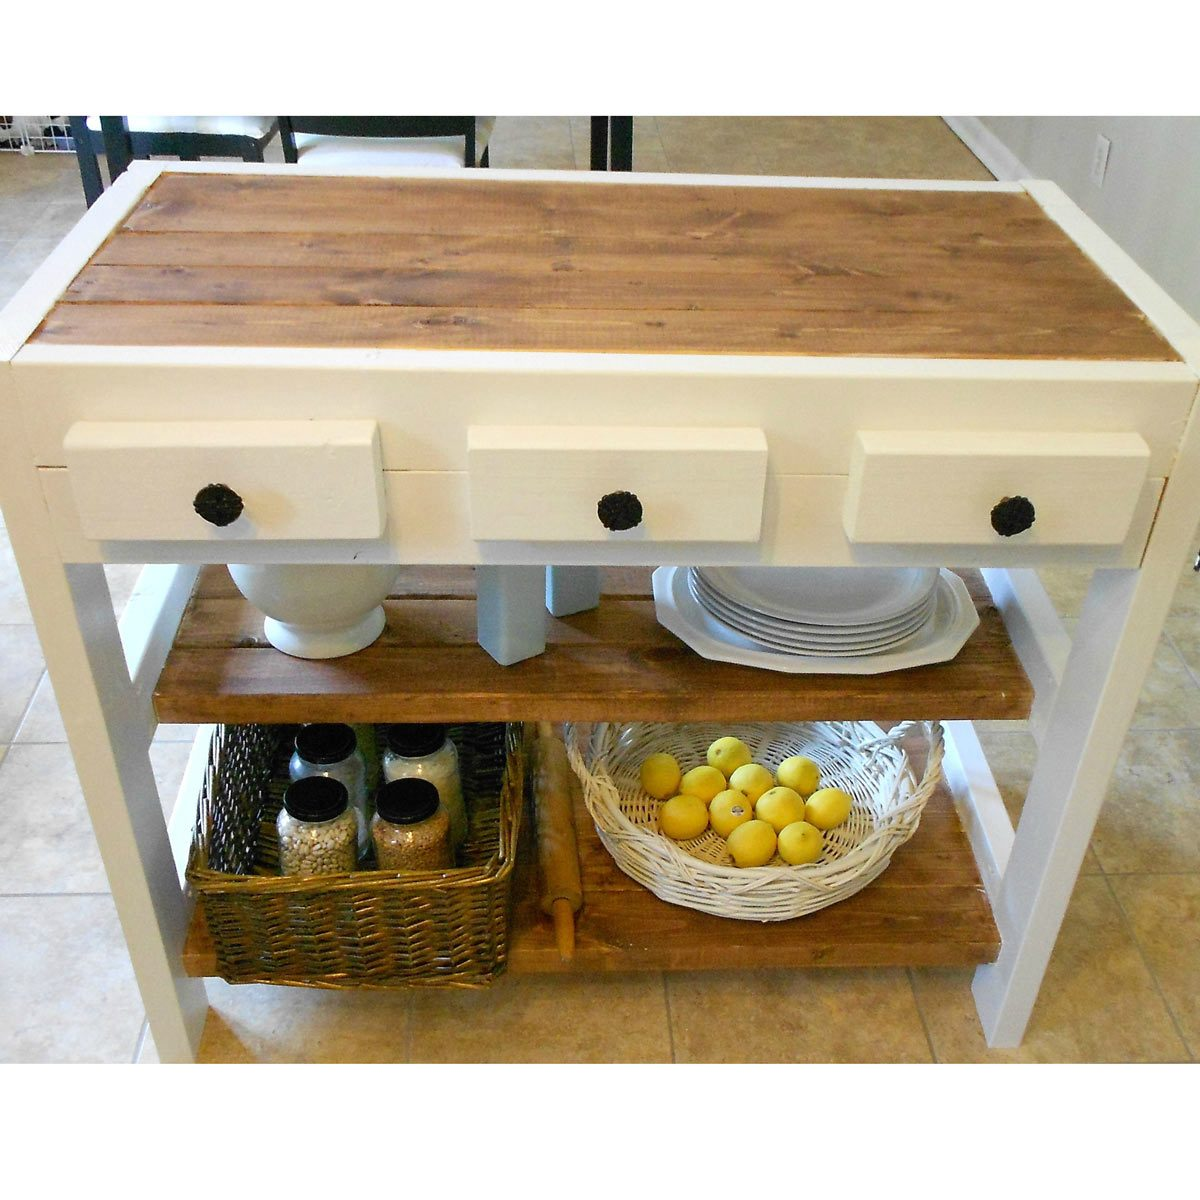 The Best DIY Kitchen Islands The Family Handyman - How to build a kitchen island with cabinets